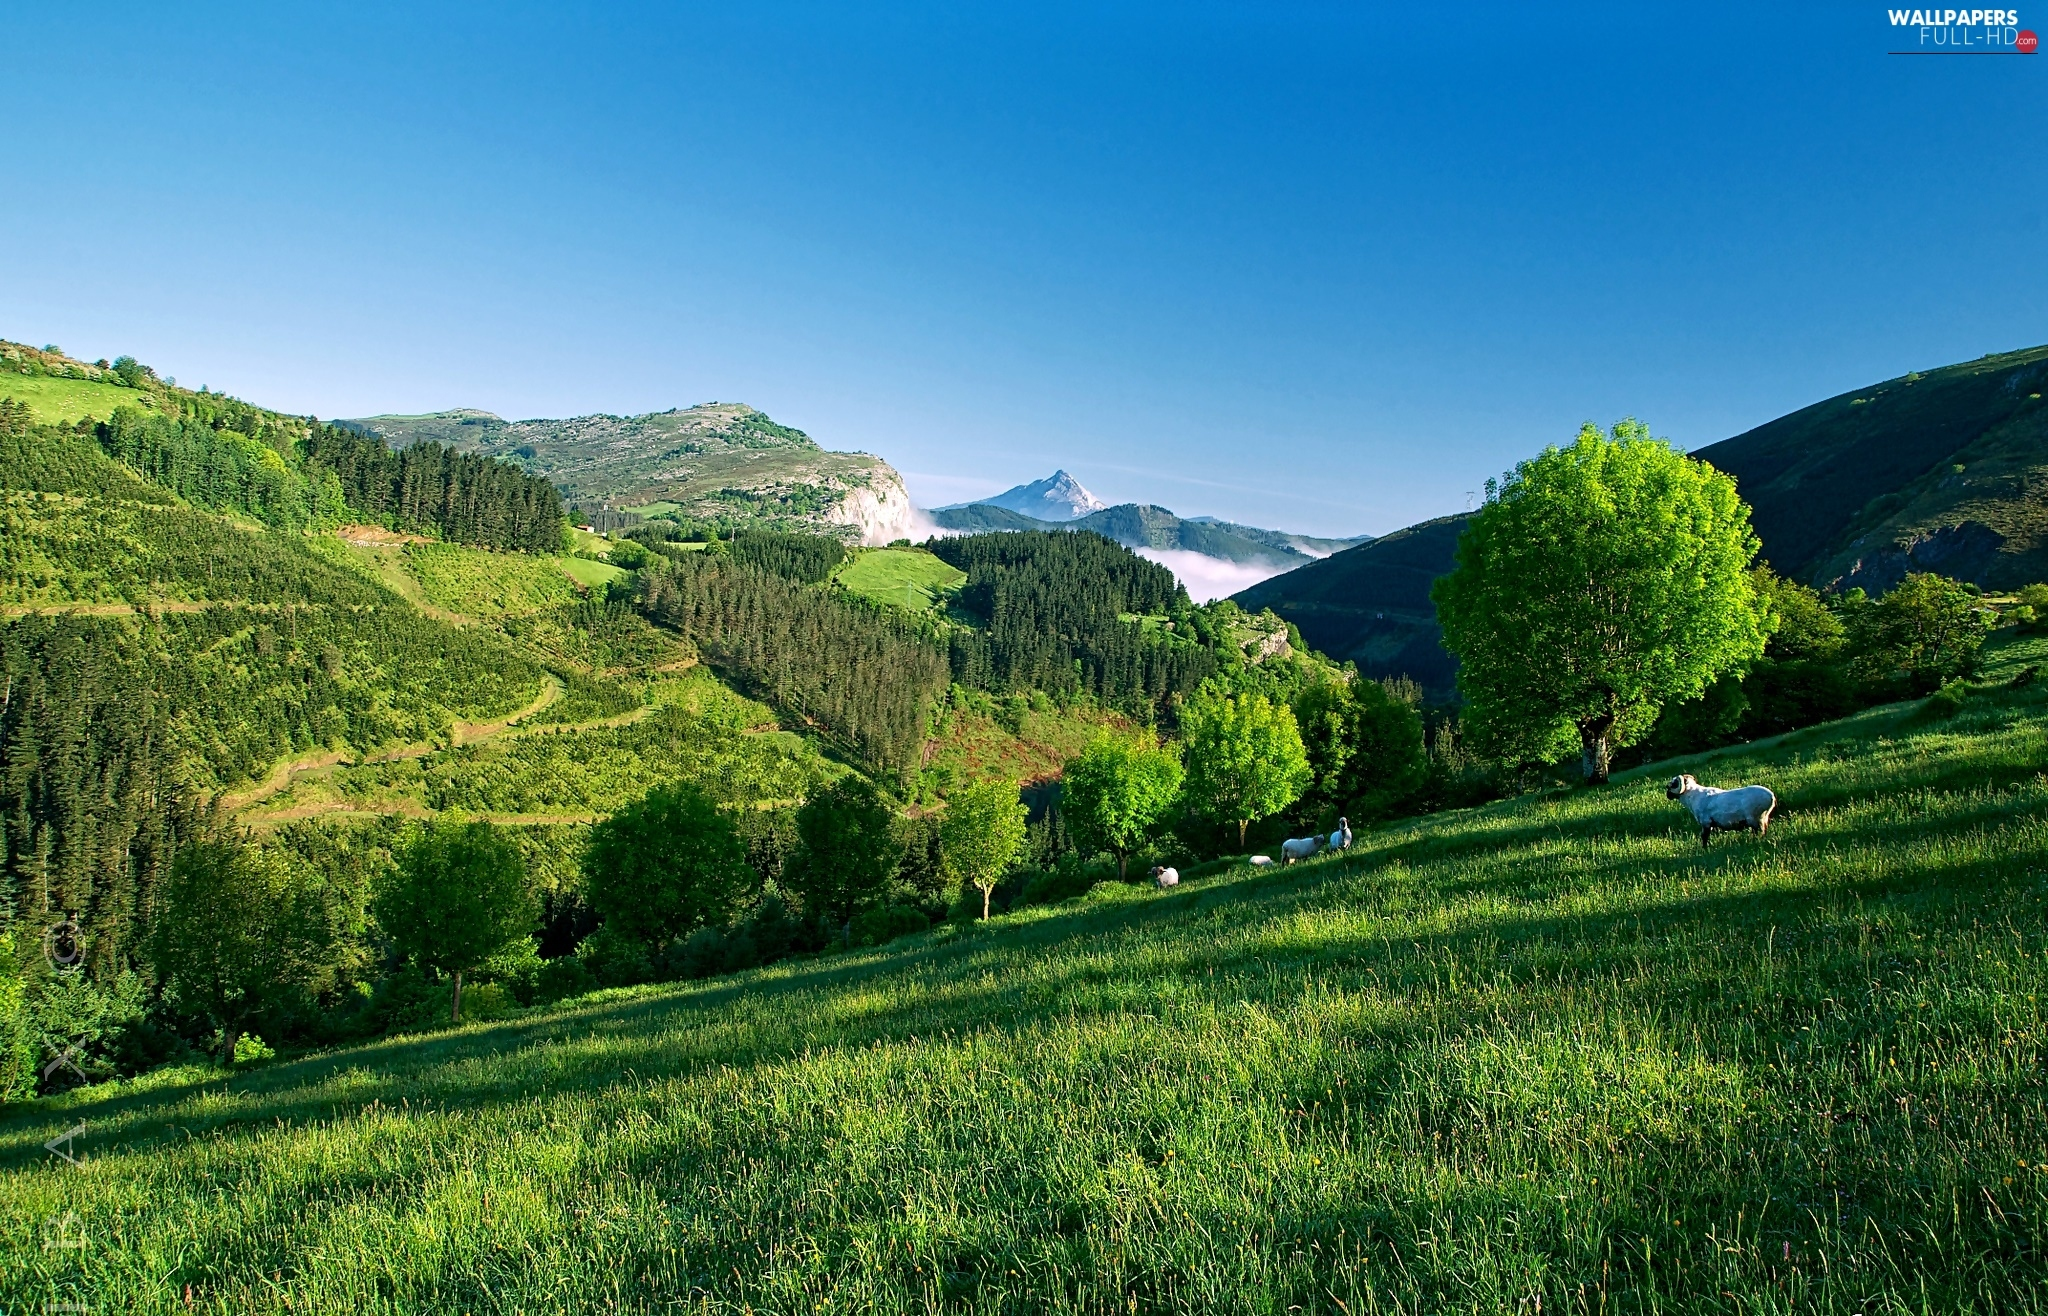 viewes, Sheep, trees, Mountains, summer, Meadow